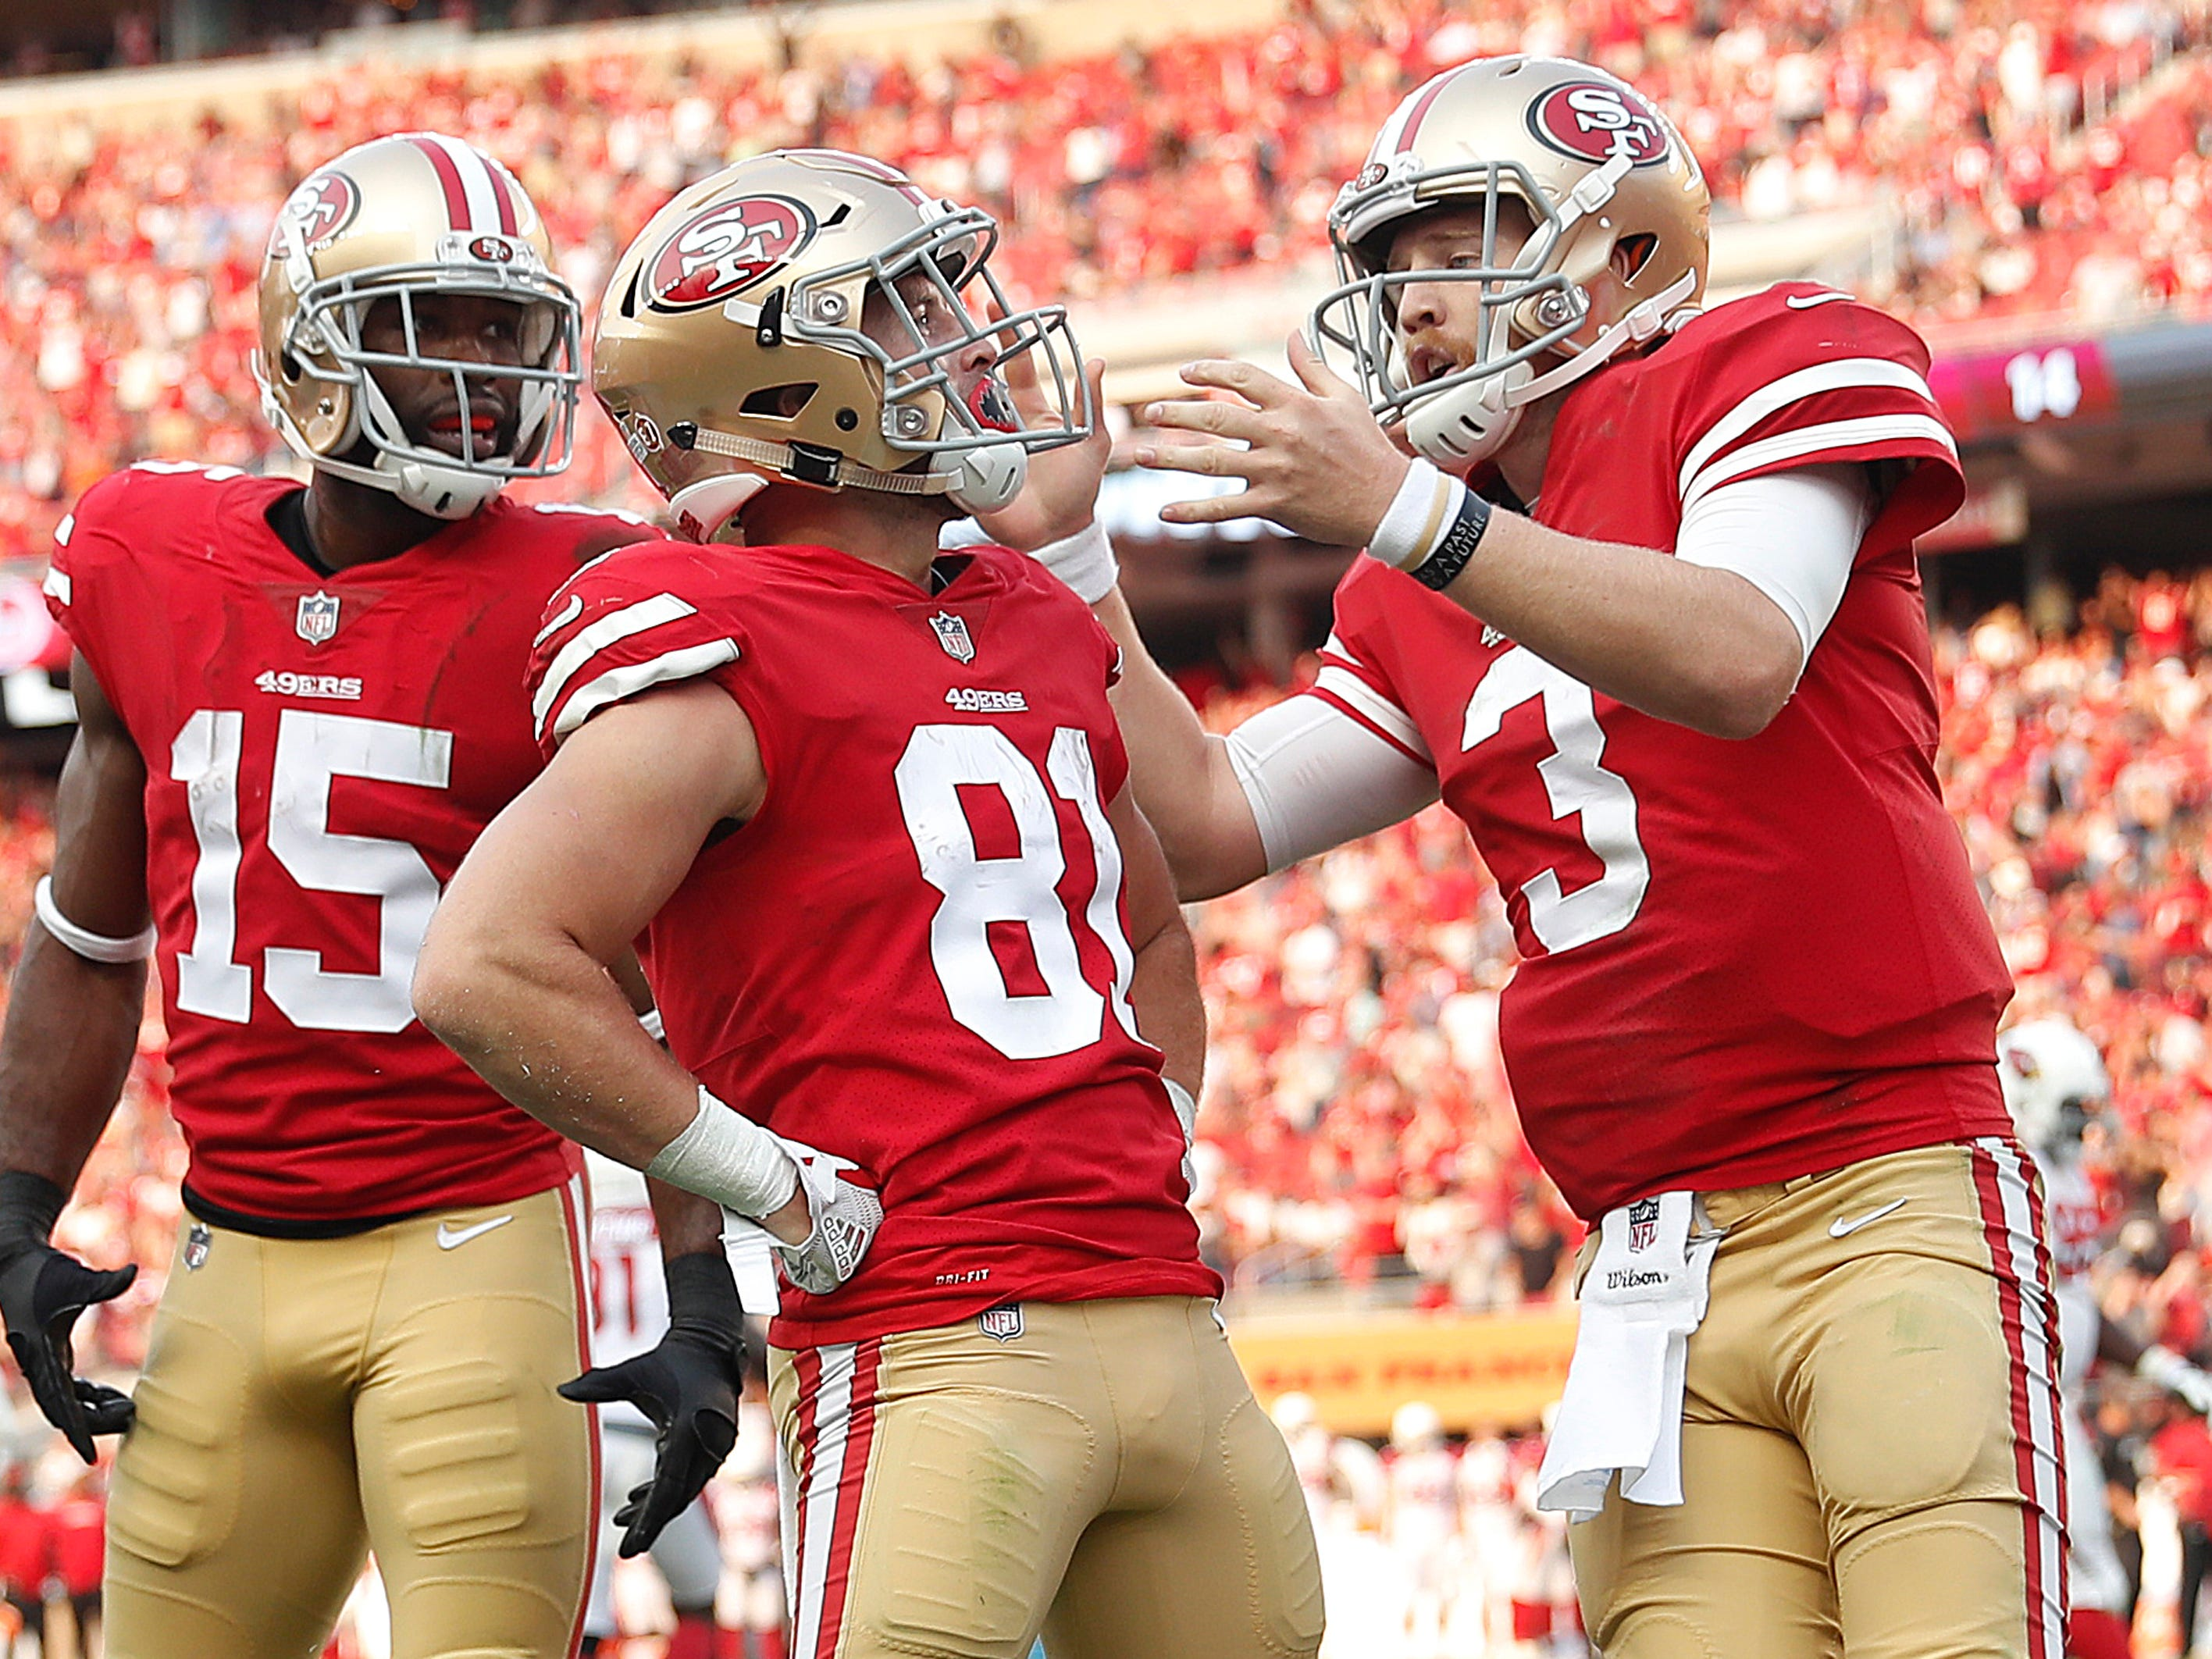 San Francisco 49ers wide receiver Trent Taylor (81) is congratulated by wide receiver Pierre Garcon (15) and quarterback C.J. Beathard (3) after scoring against the Arizona Cardinals during the second half of an NFL football game in Santa Clara, Calif., Sunday, Oct. 7, 2018.